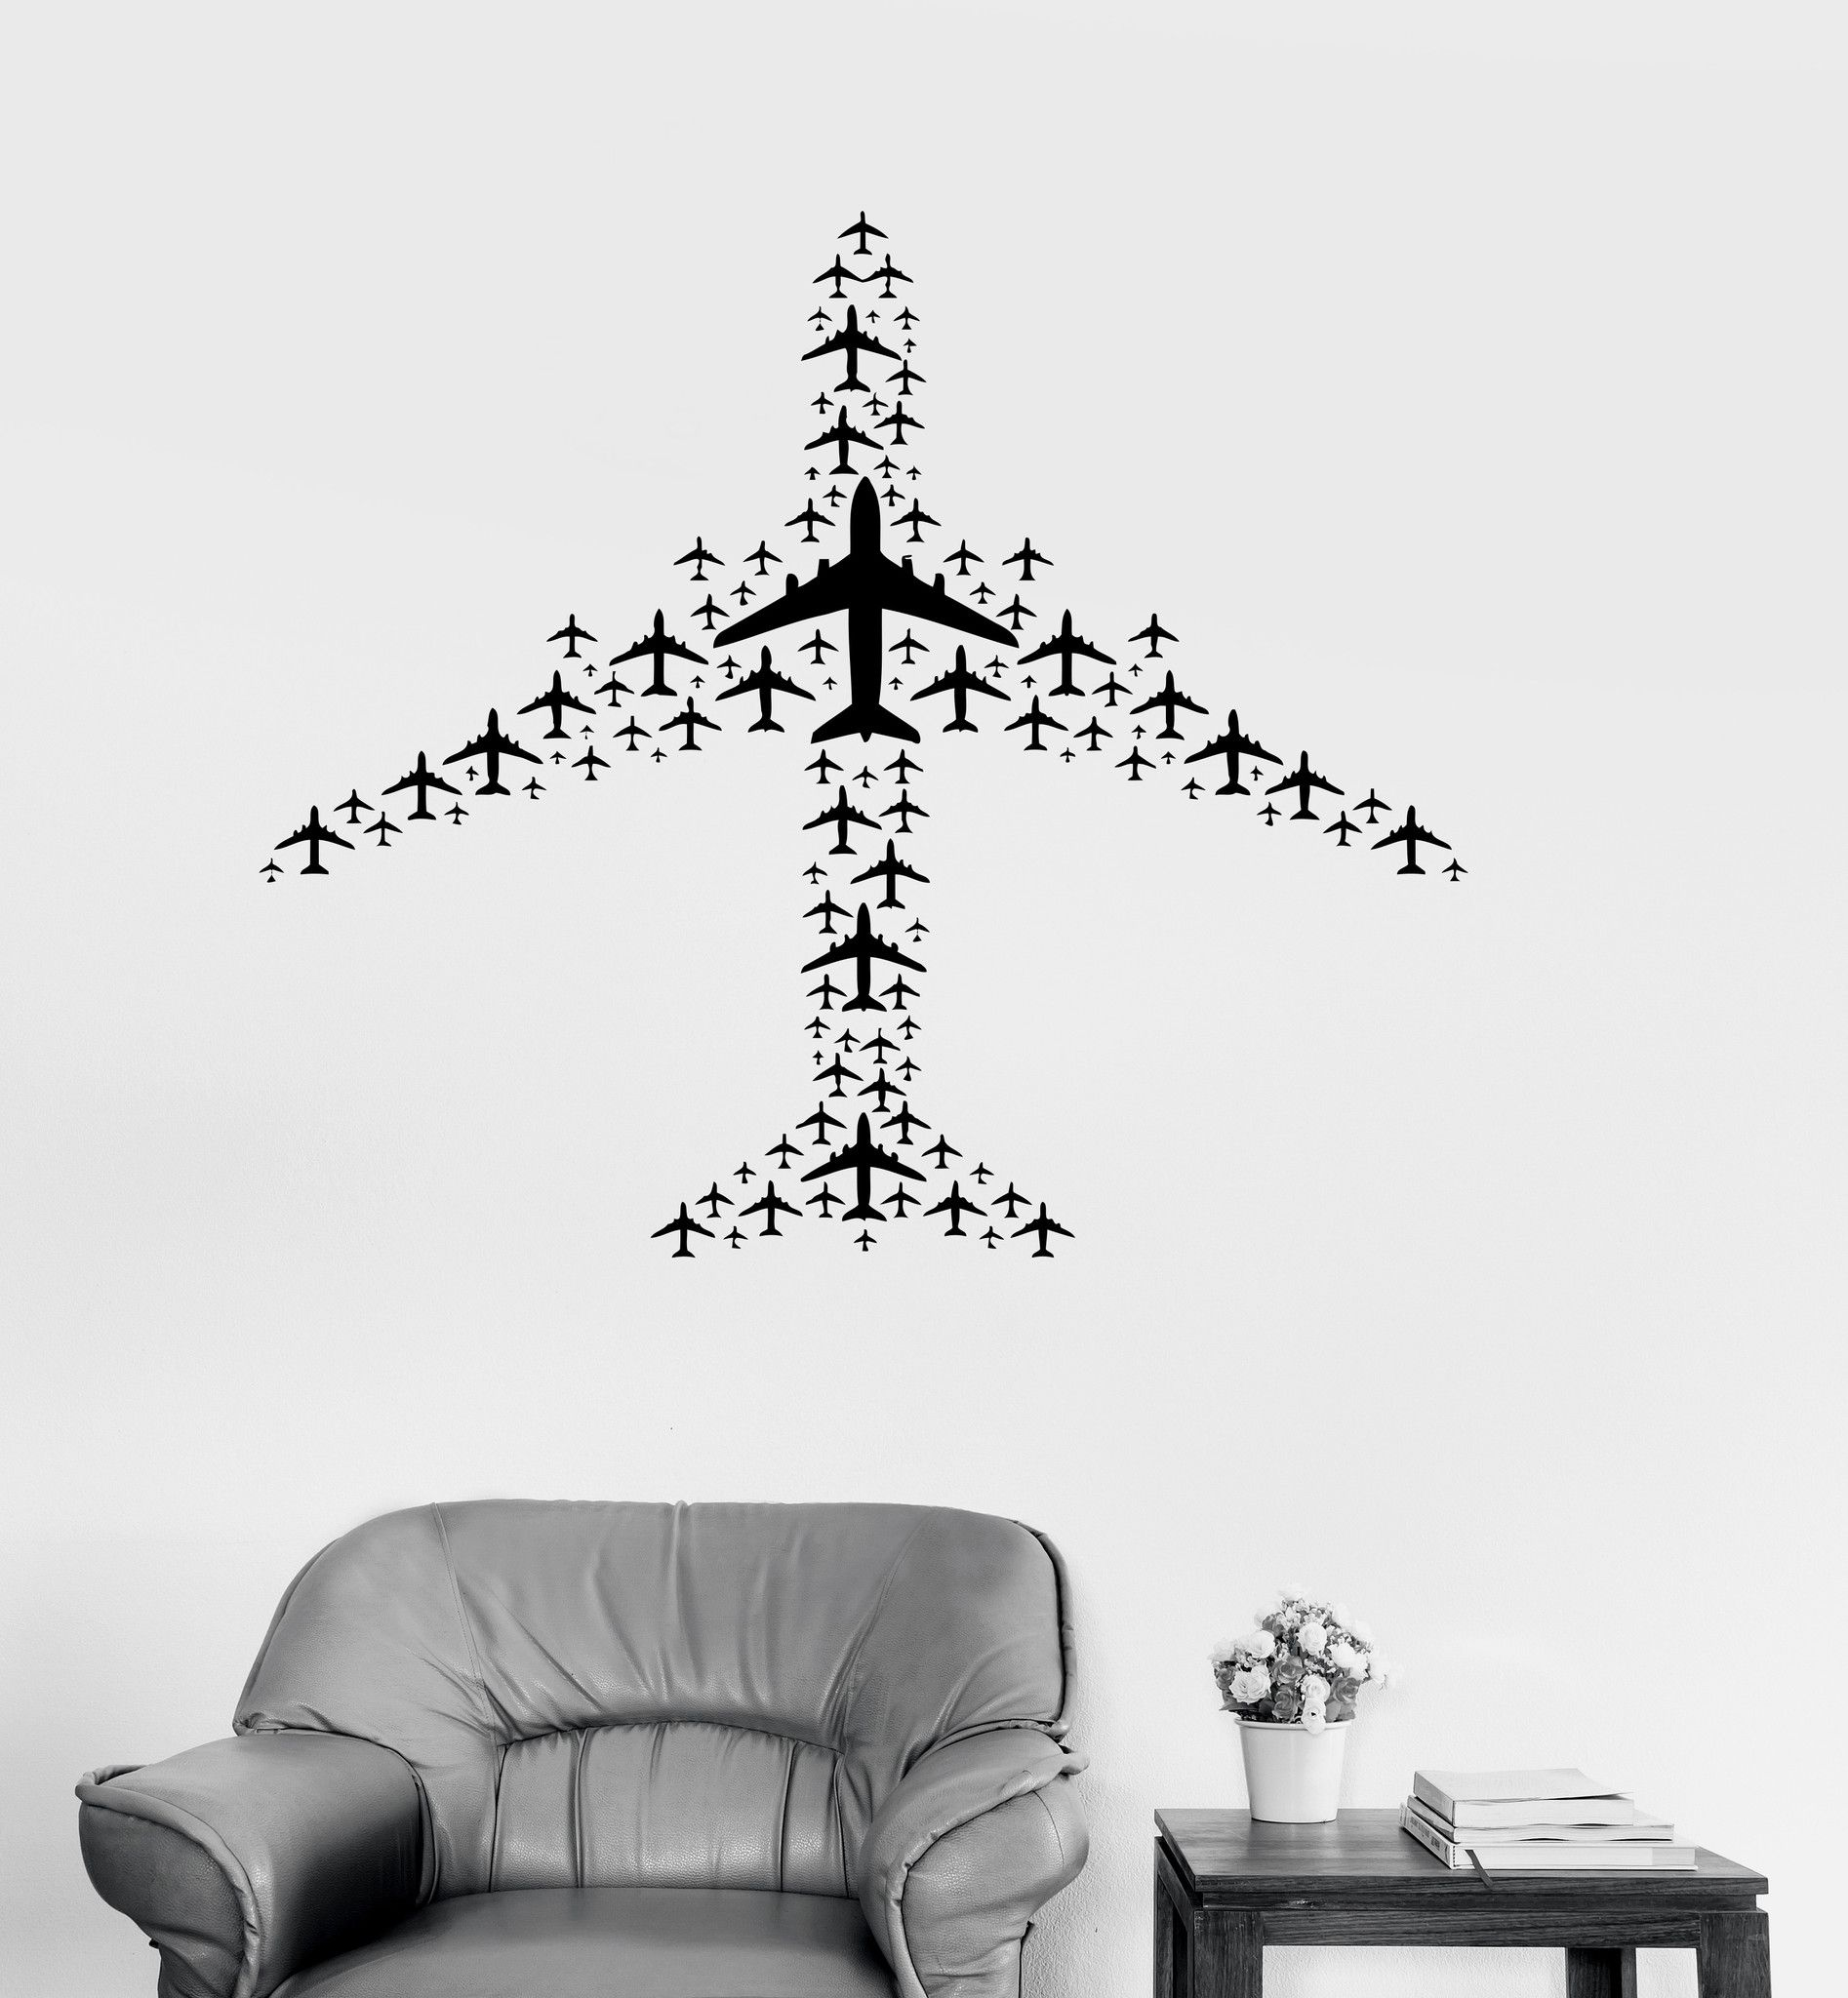 Vinyl Decal Airplane Flight Airport Aircraft Travel Wall Sticker Helicopter Diagram Greeting Cards Zazzle Our Stickers Are Unique And One Of A Kind Every We Sell Is Made Per Order Cut In House Make Decals Using Superior Quality